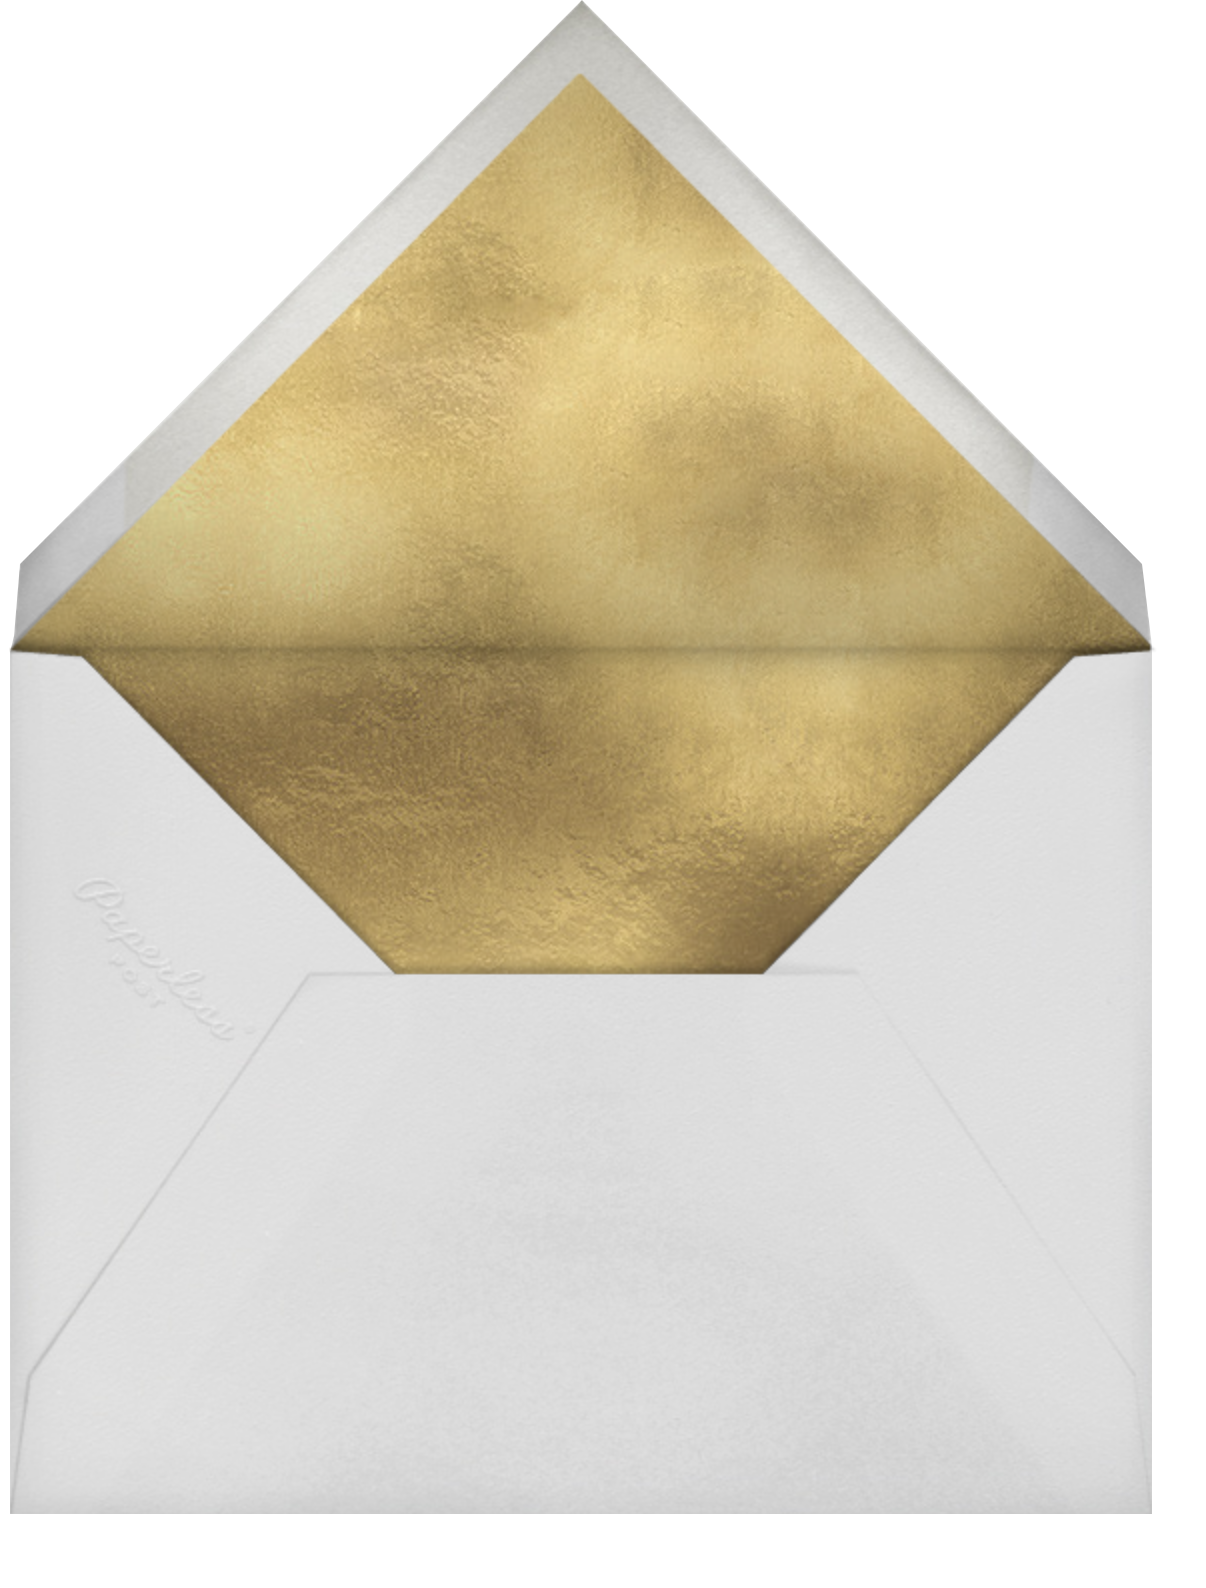 Winter Canopy - Rifle Paper Co. - Holiday cards - envelope back